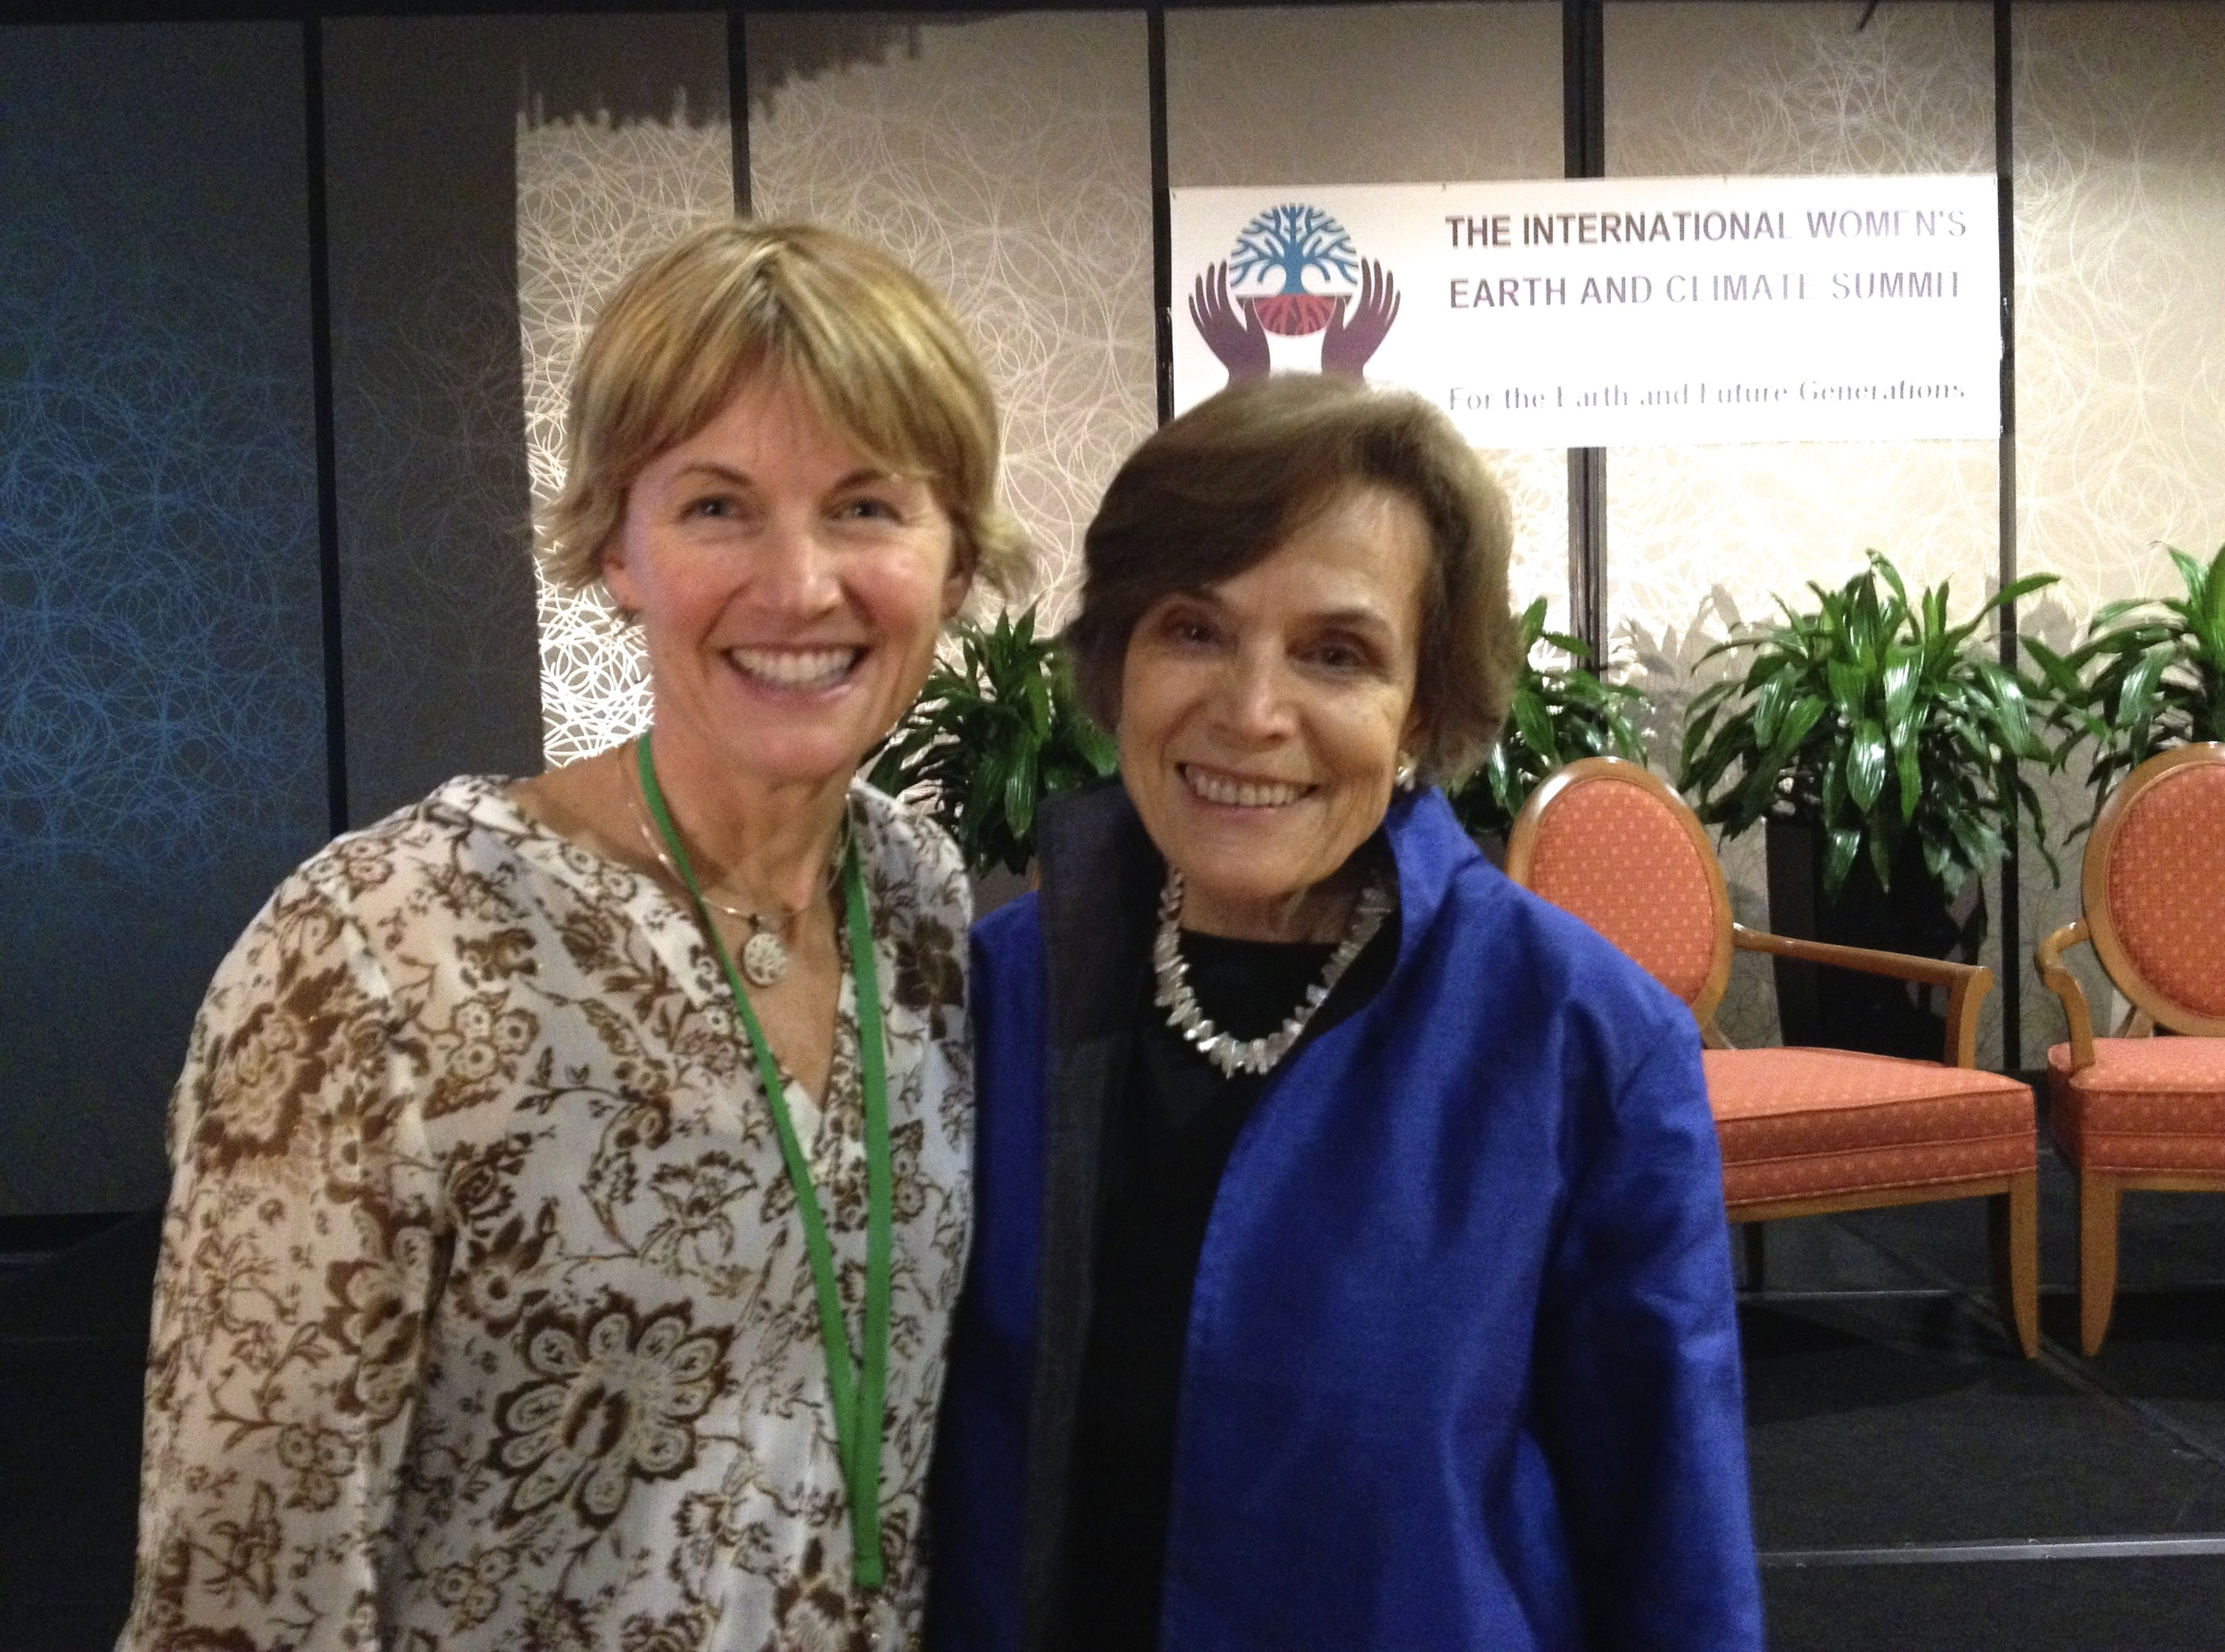 with Sylvia Earle